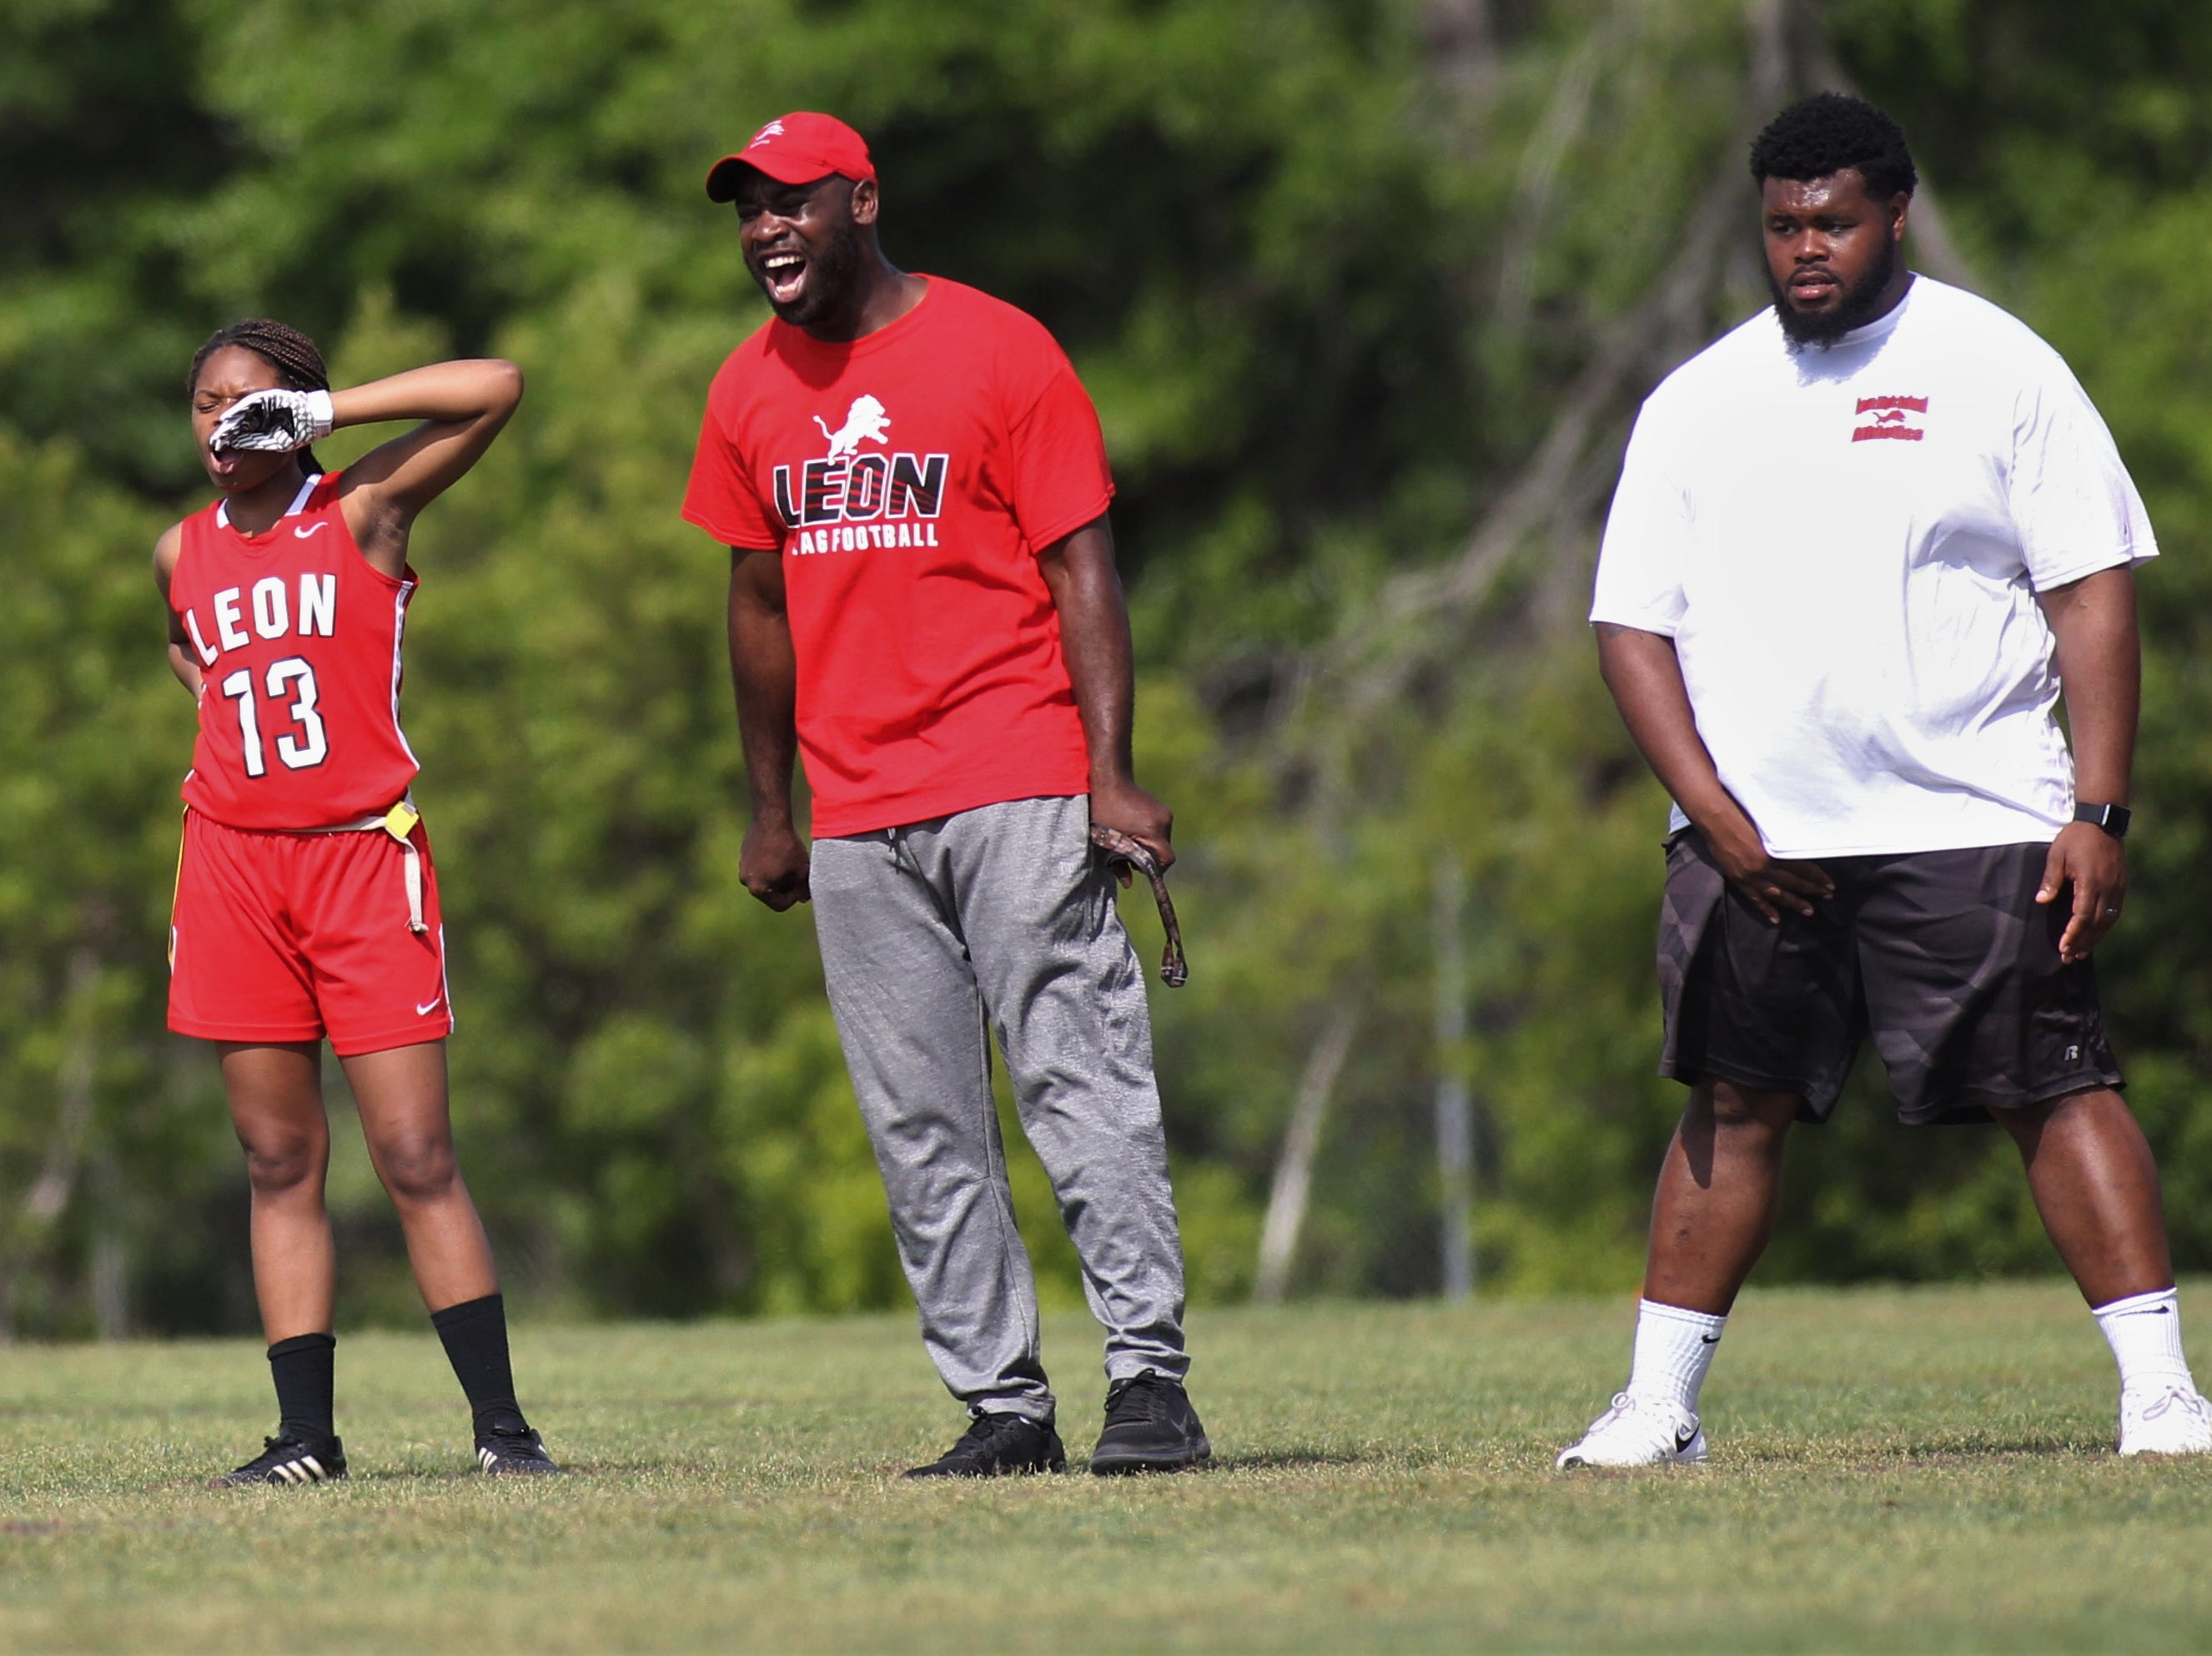 Leon head coach James Green screams after a big play during the 2019 Capital City Classic flag football tournament at the FSU Rec SportsPlex on April 6, 2019.